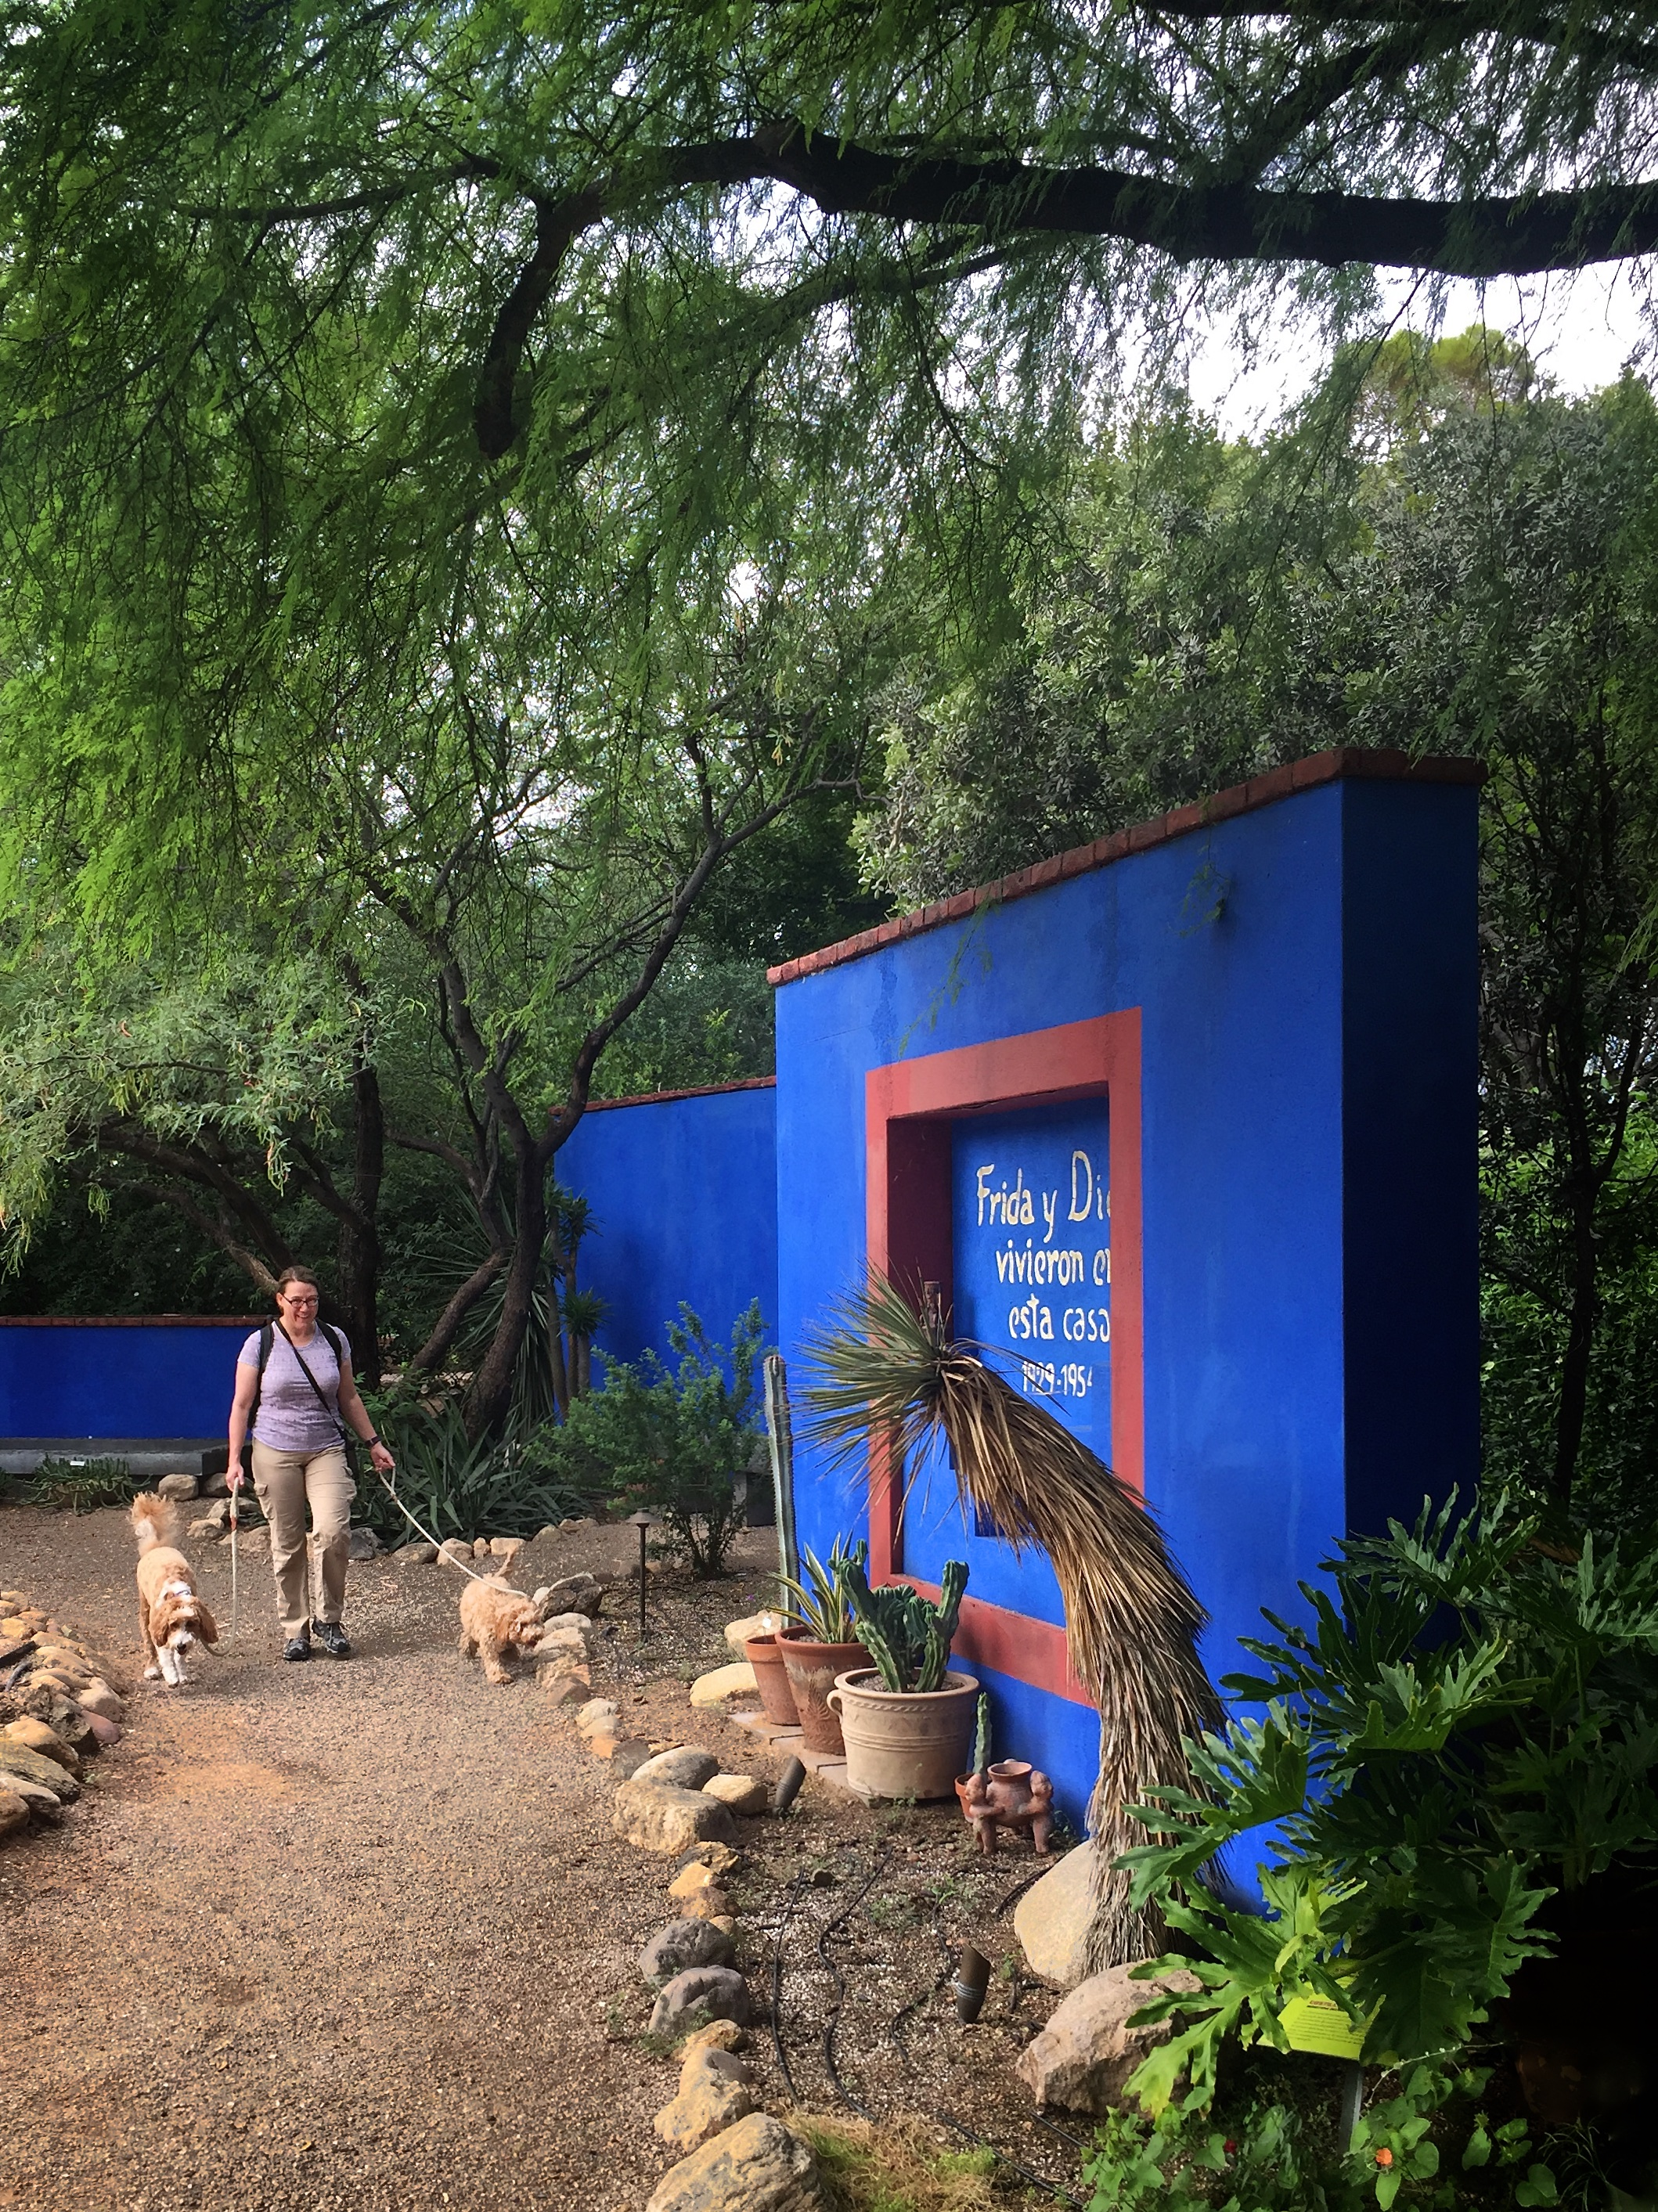 Walking along the pathways surrounding the Frida Kahlo Art Garden Life exhibit at the Tucson Botanical Gardens.